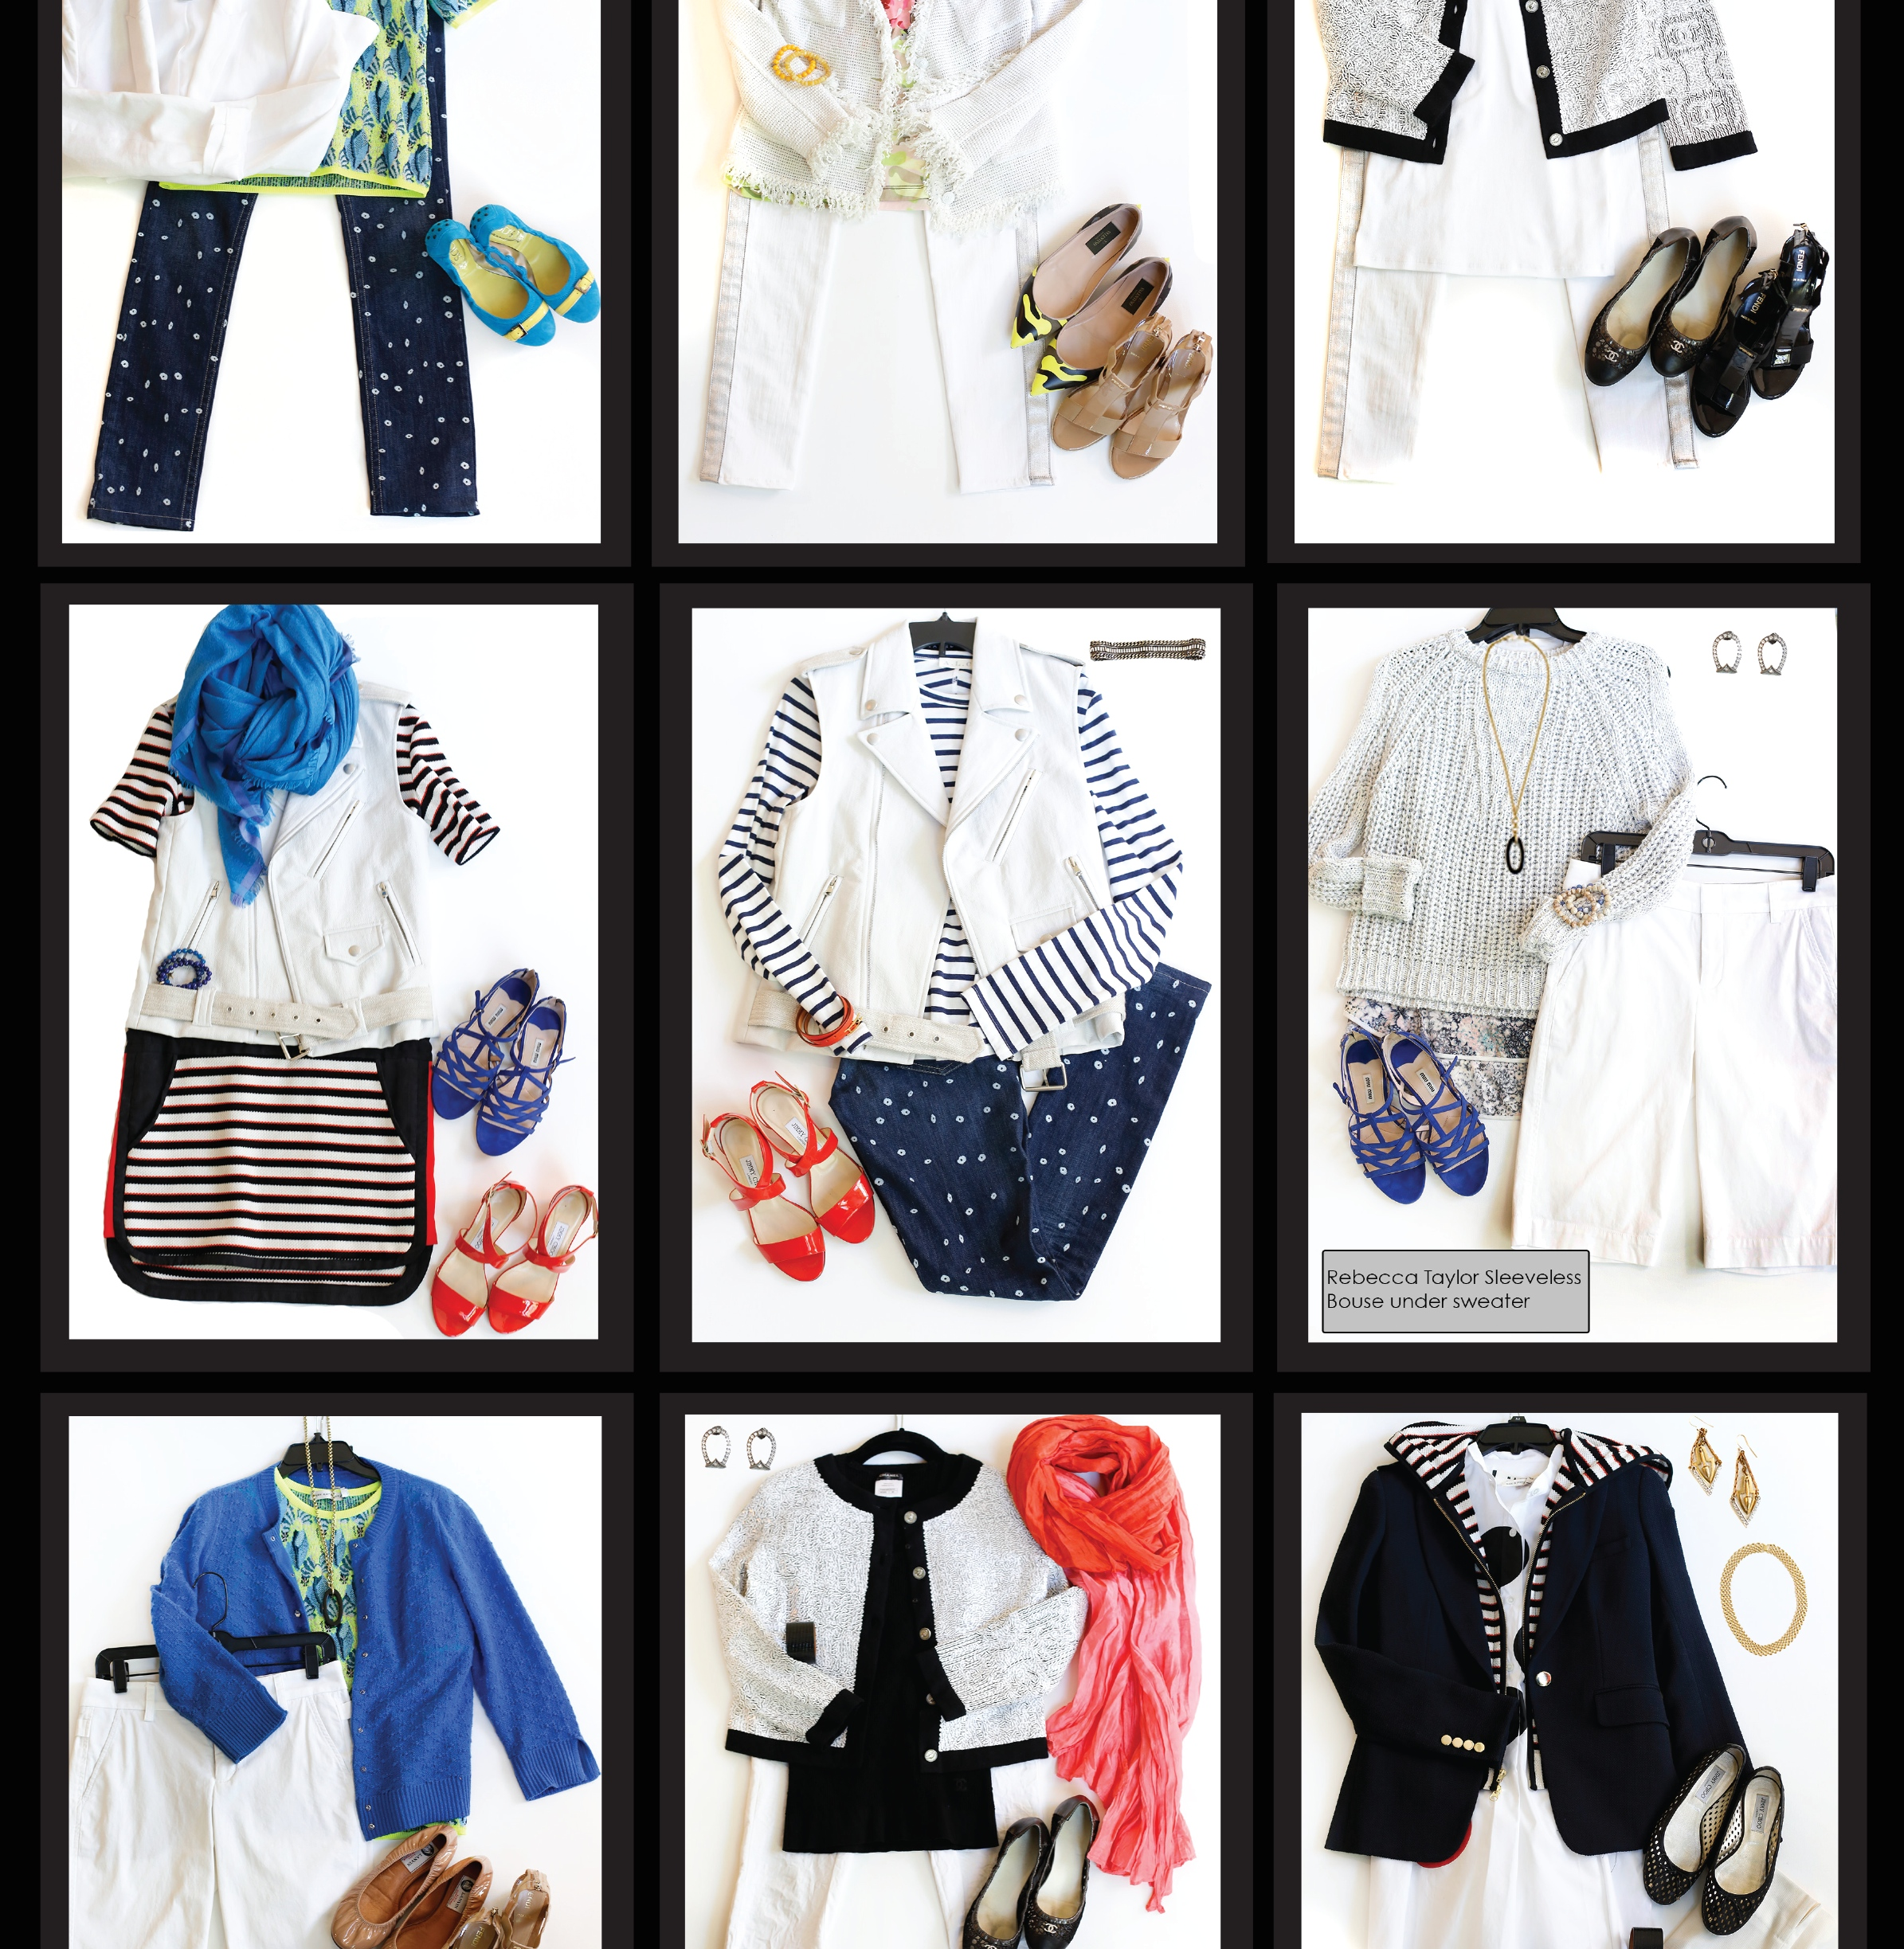 Outfits page 2